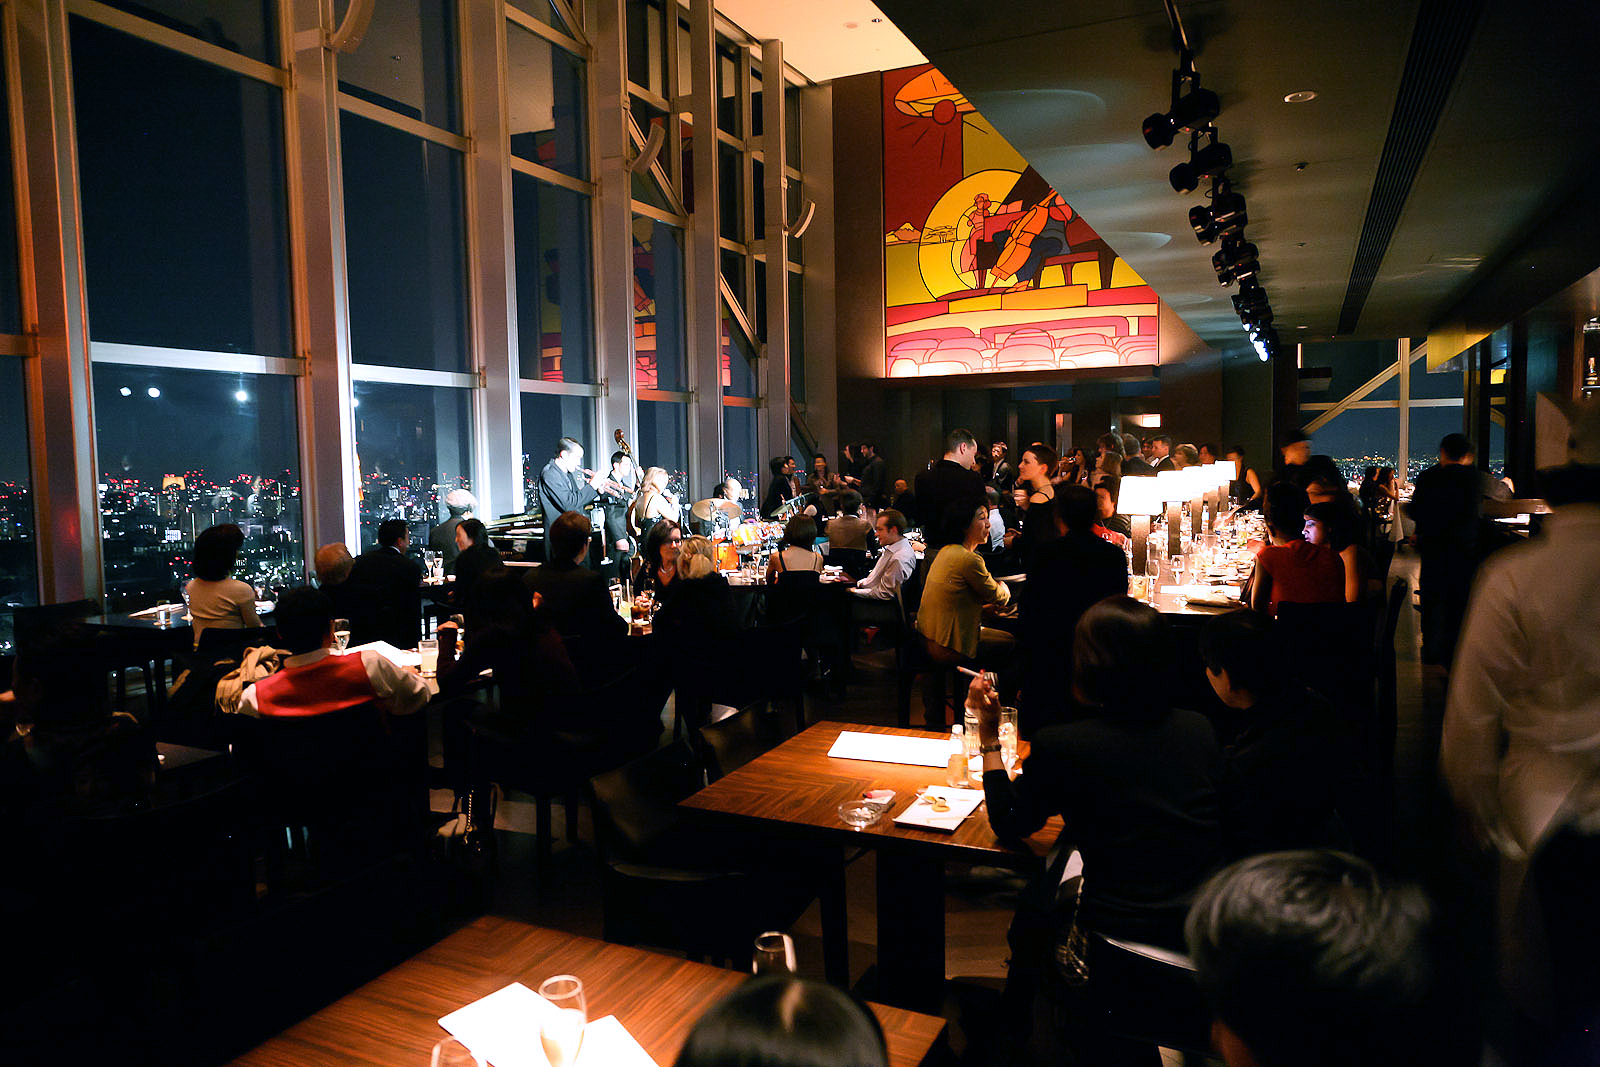 The New York Bar, of Lost in Translation (2013) fame.